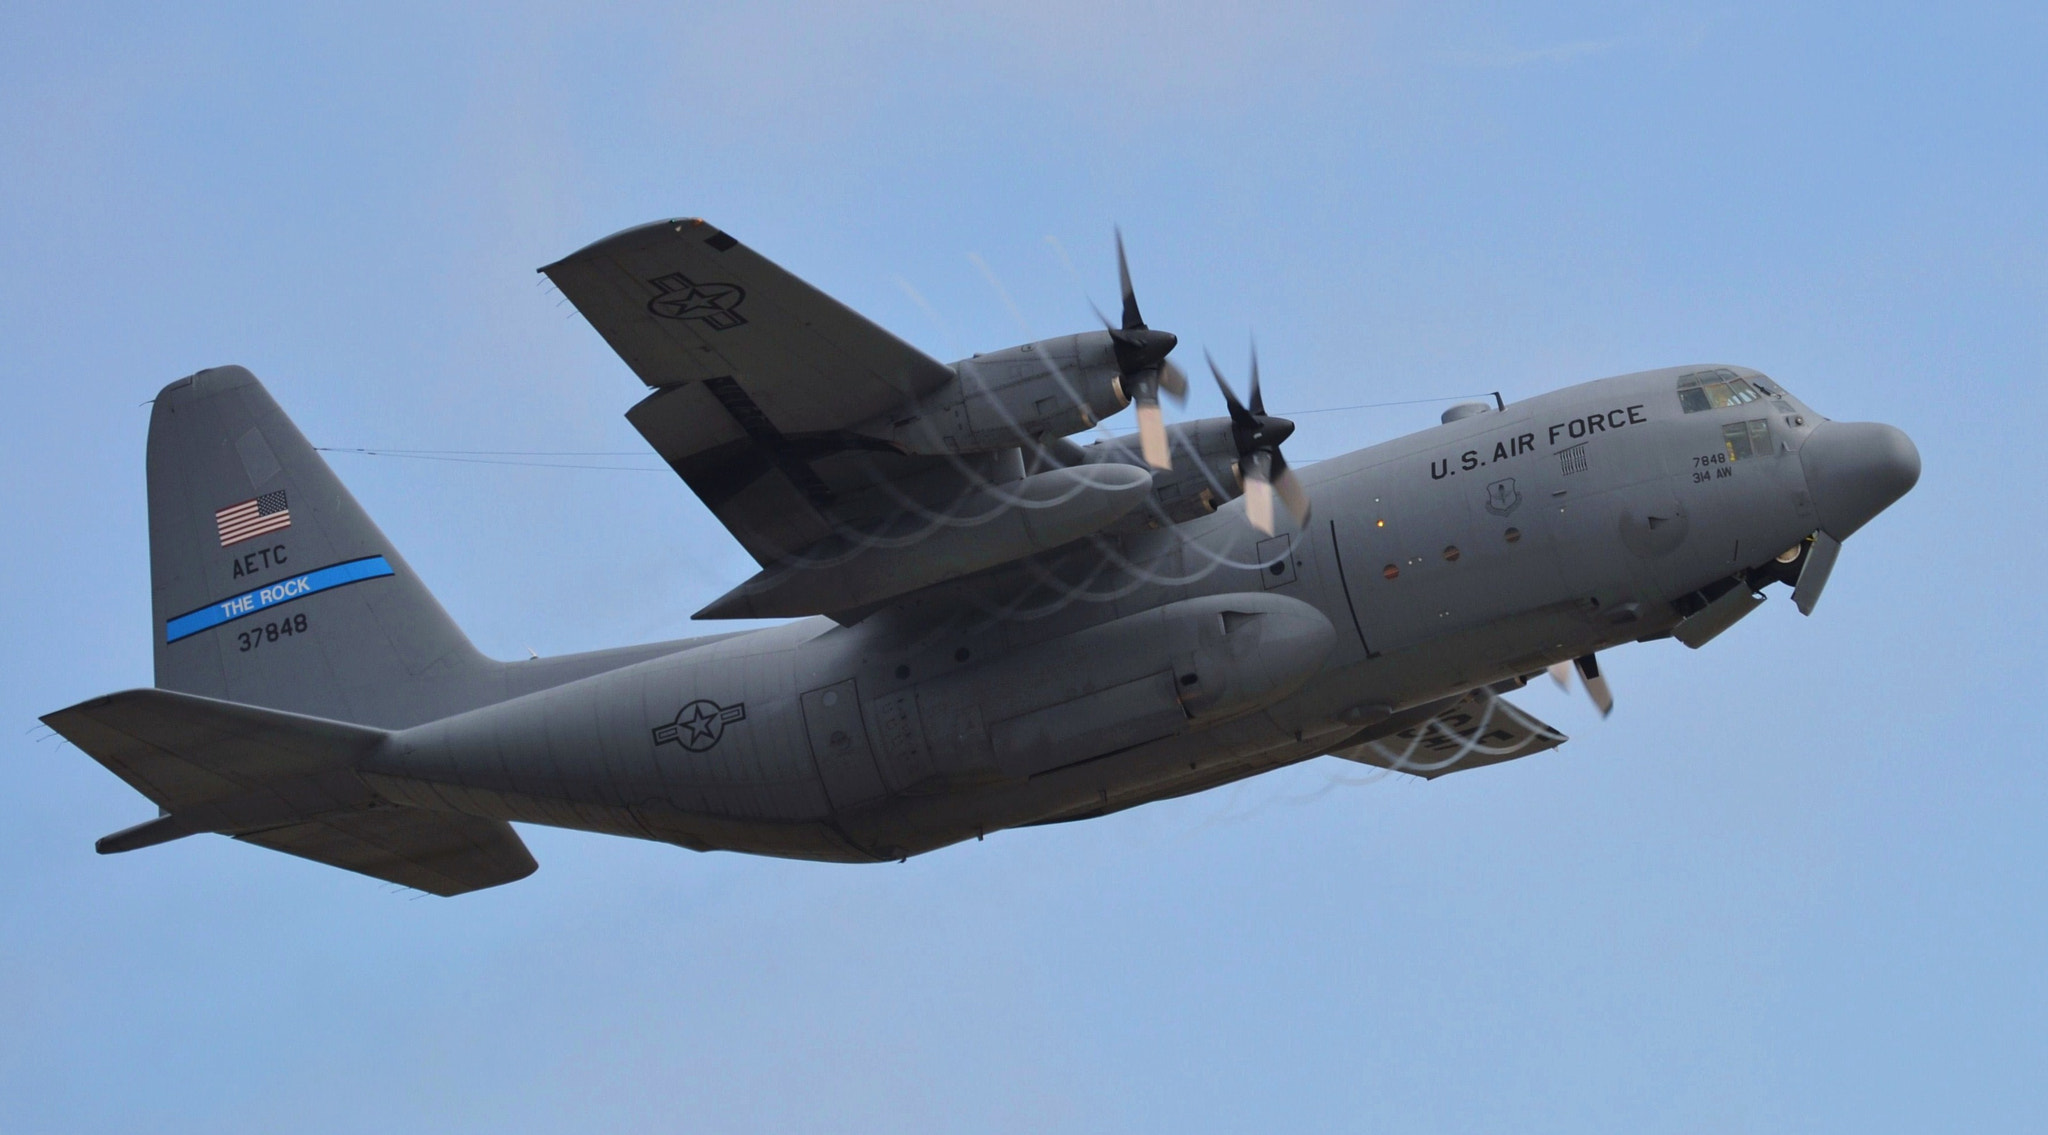 Photograph C-130 With Tip Trails by Michael Fitzsimmons on 500px